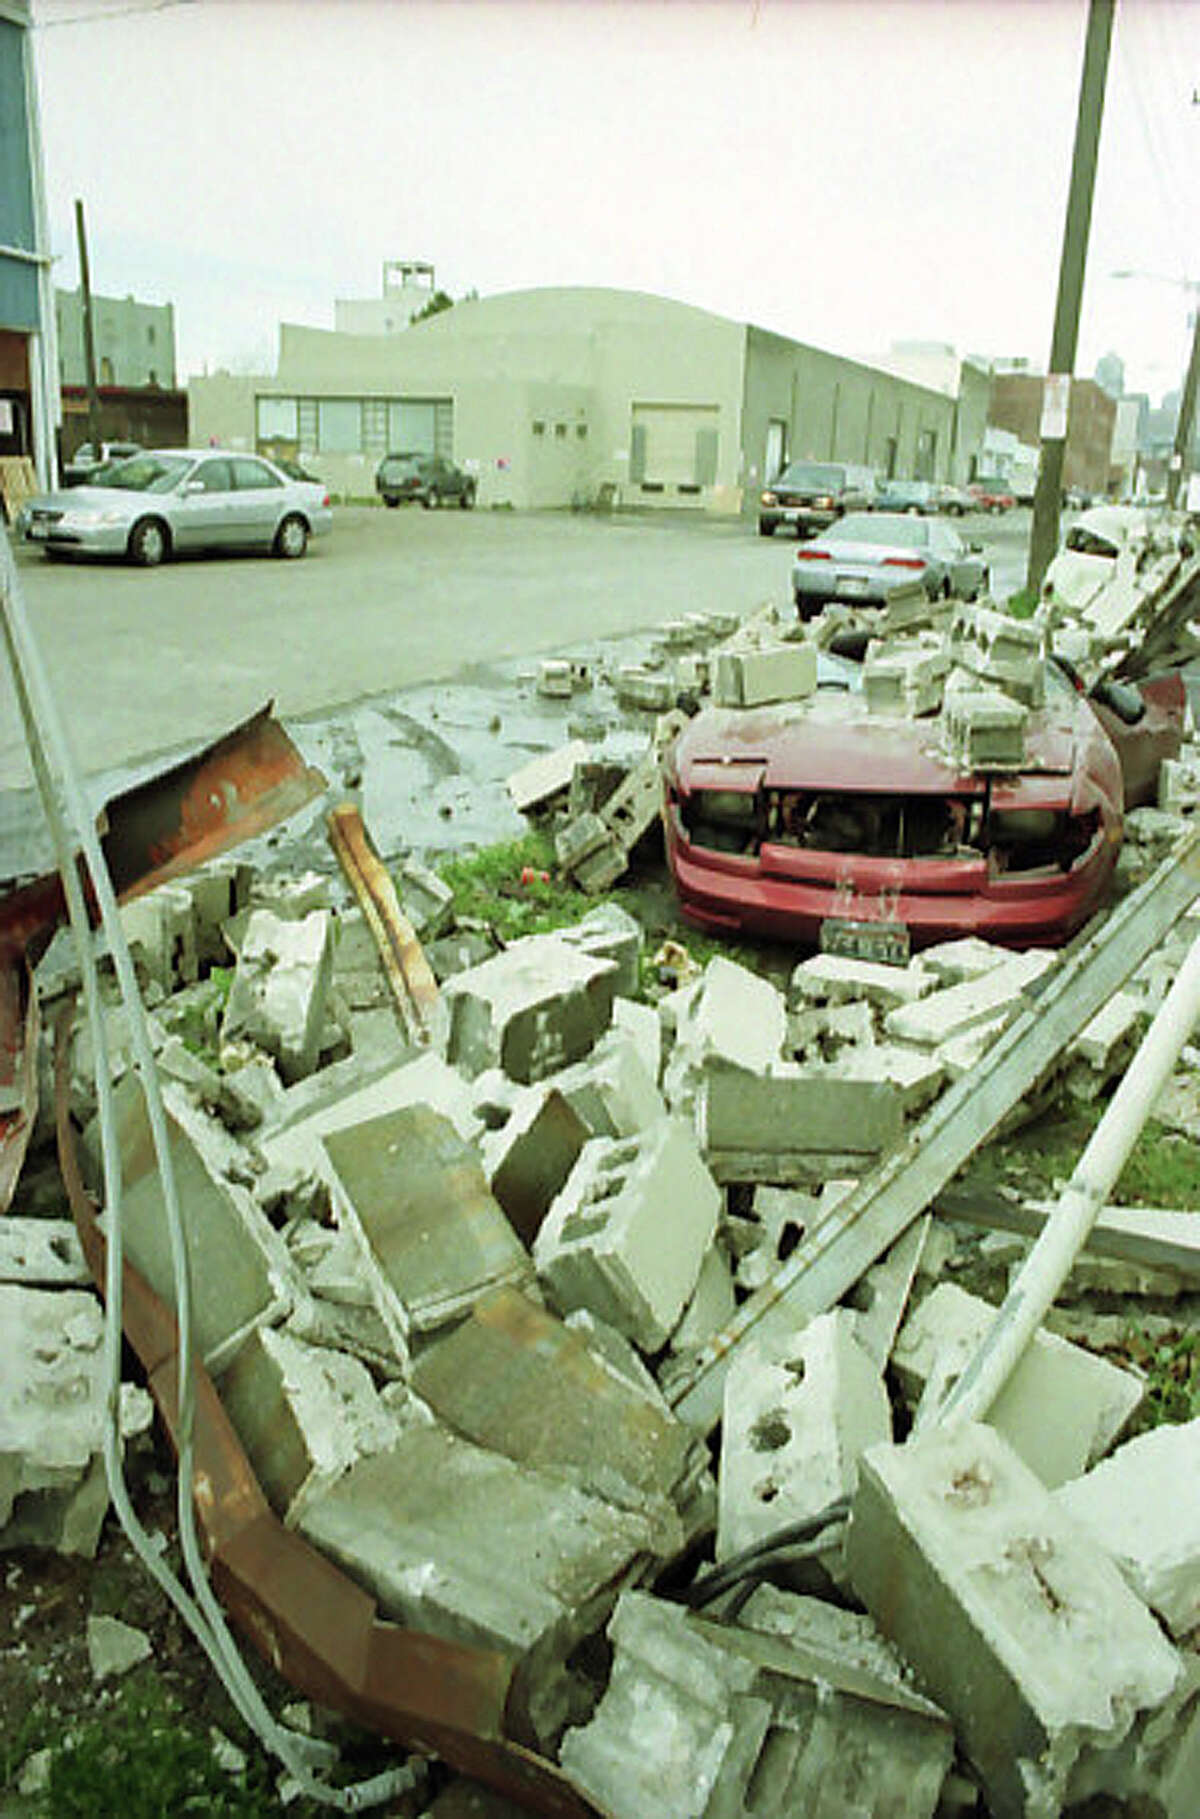 This picture, taken south of Safeco Field, shows the damage from the 6.8 magnitude Nisqually earthquake on Feb. 28, 2001.